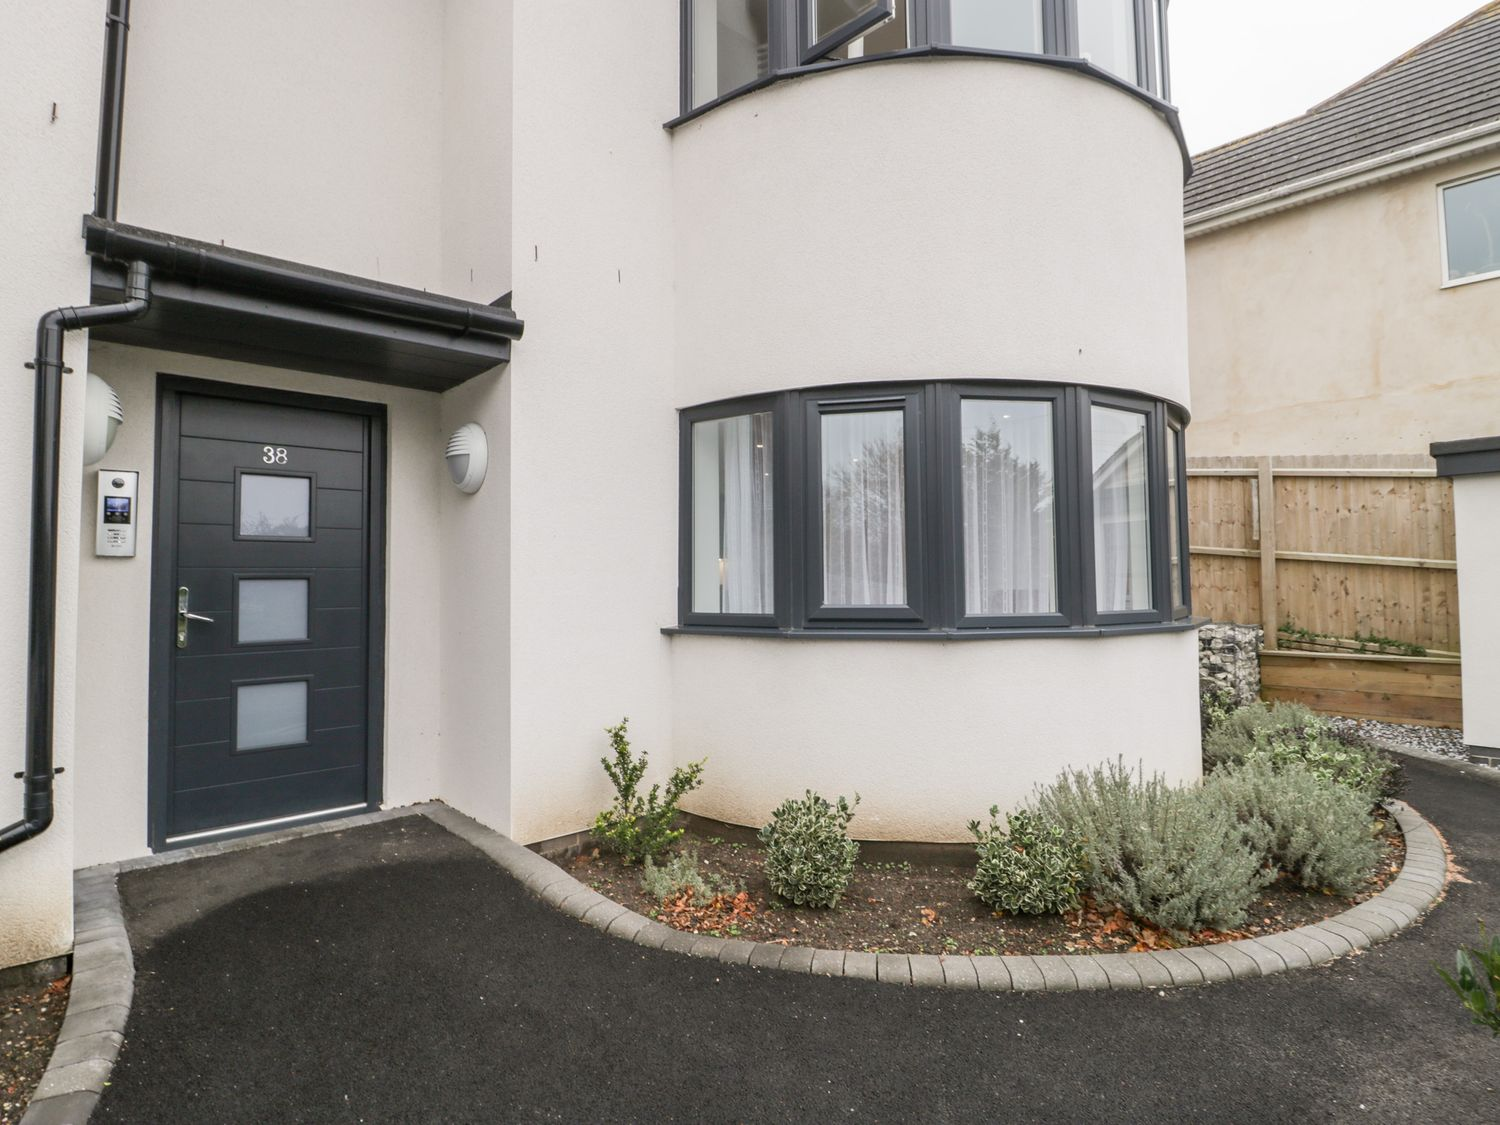 Flat 2, 38 Preston Road - Dorset - 1037083 - photo 1